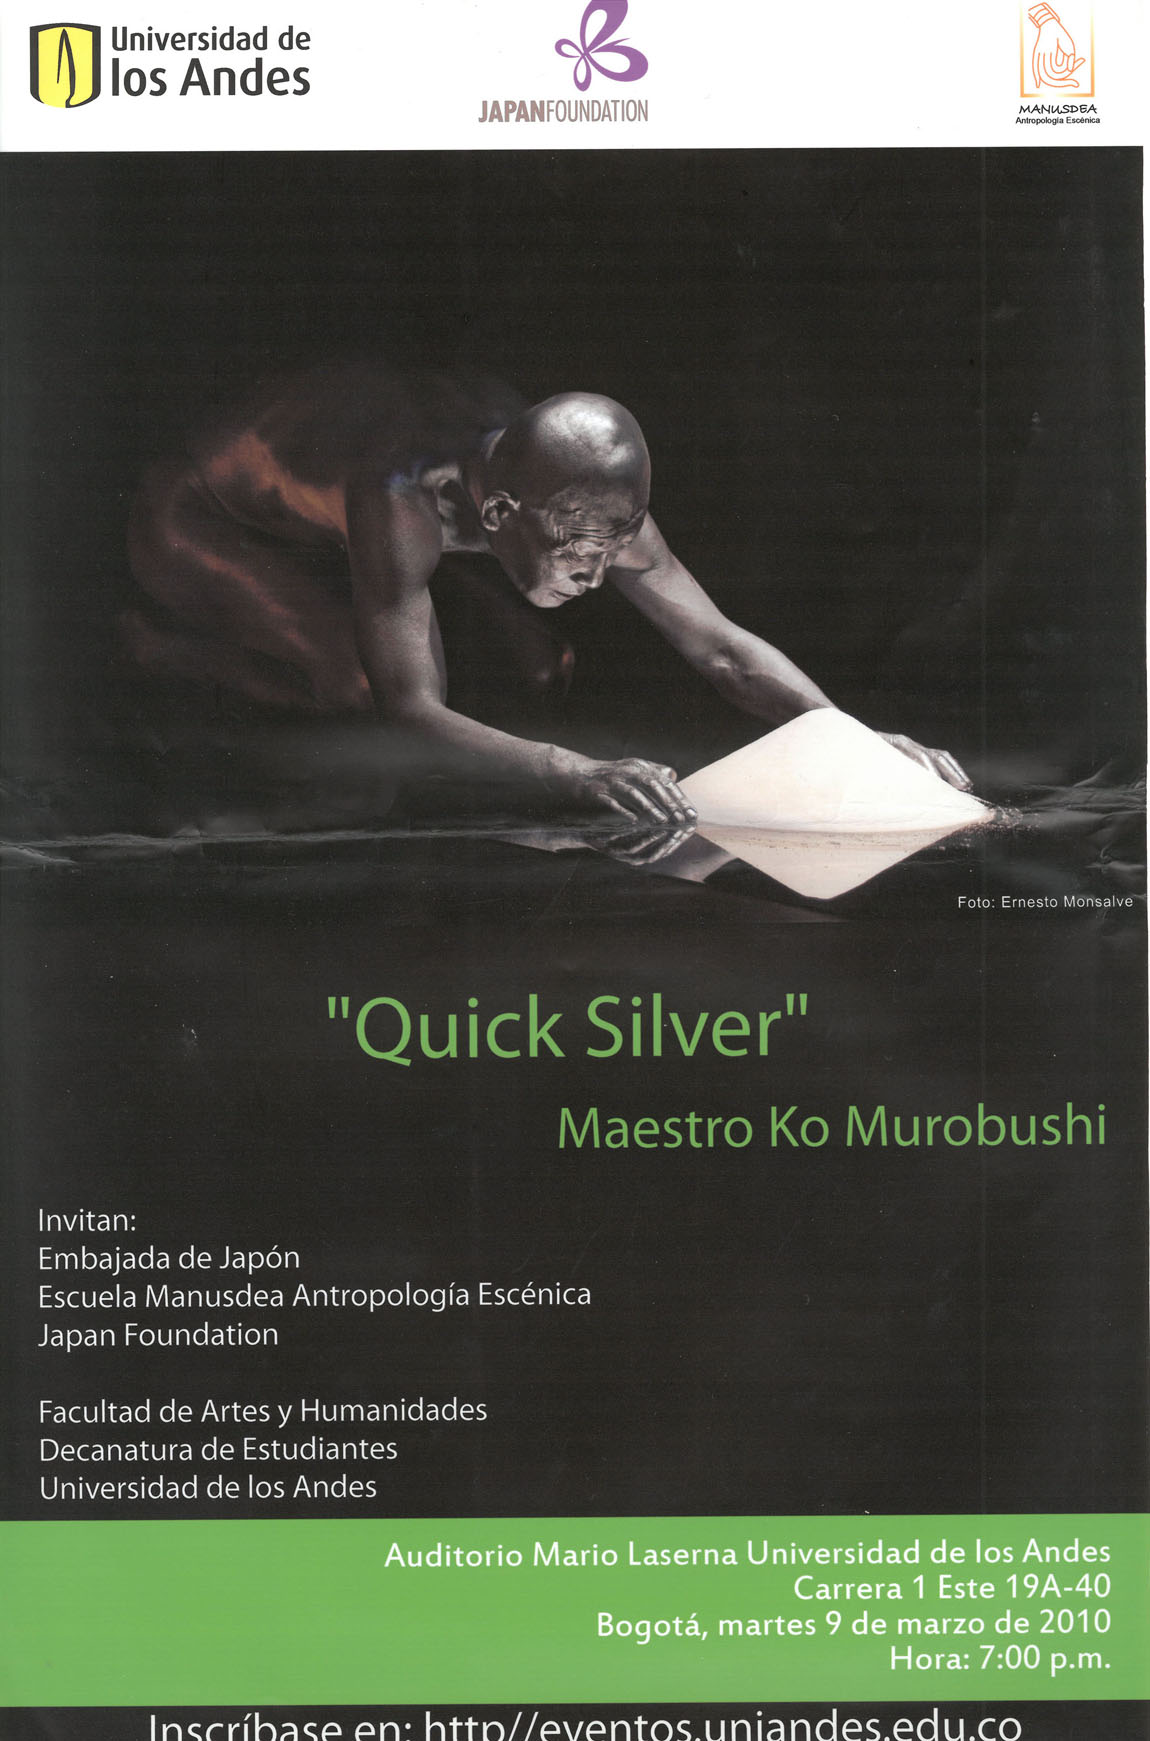 quick silver、Showing of Workshop Students[プログラム, p1]